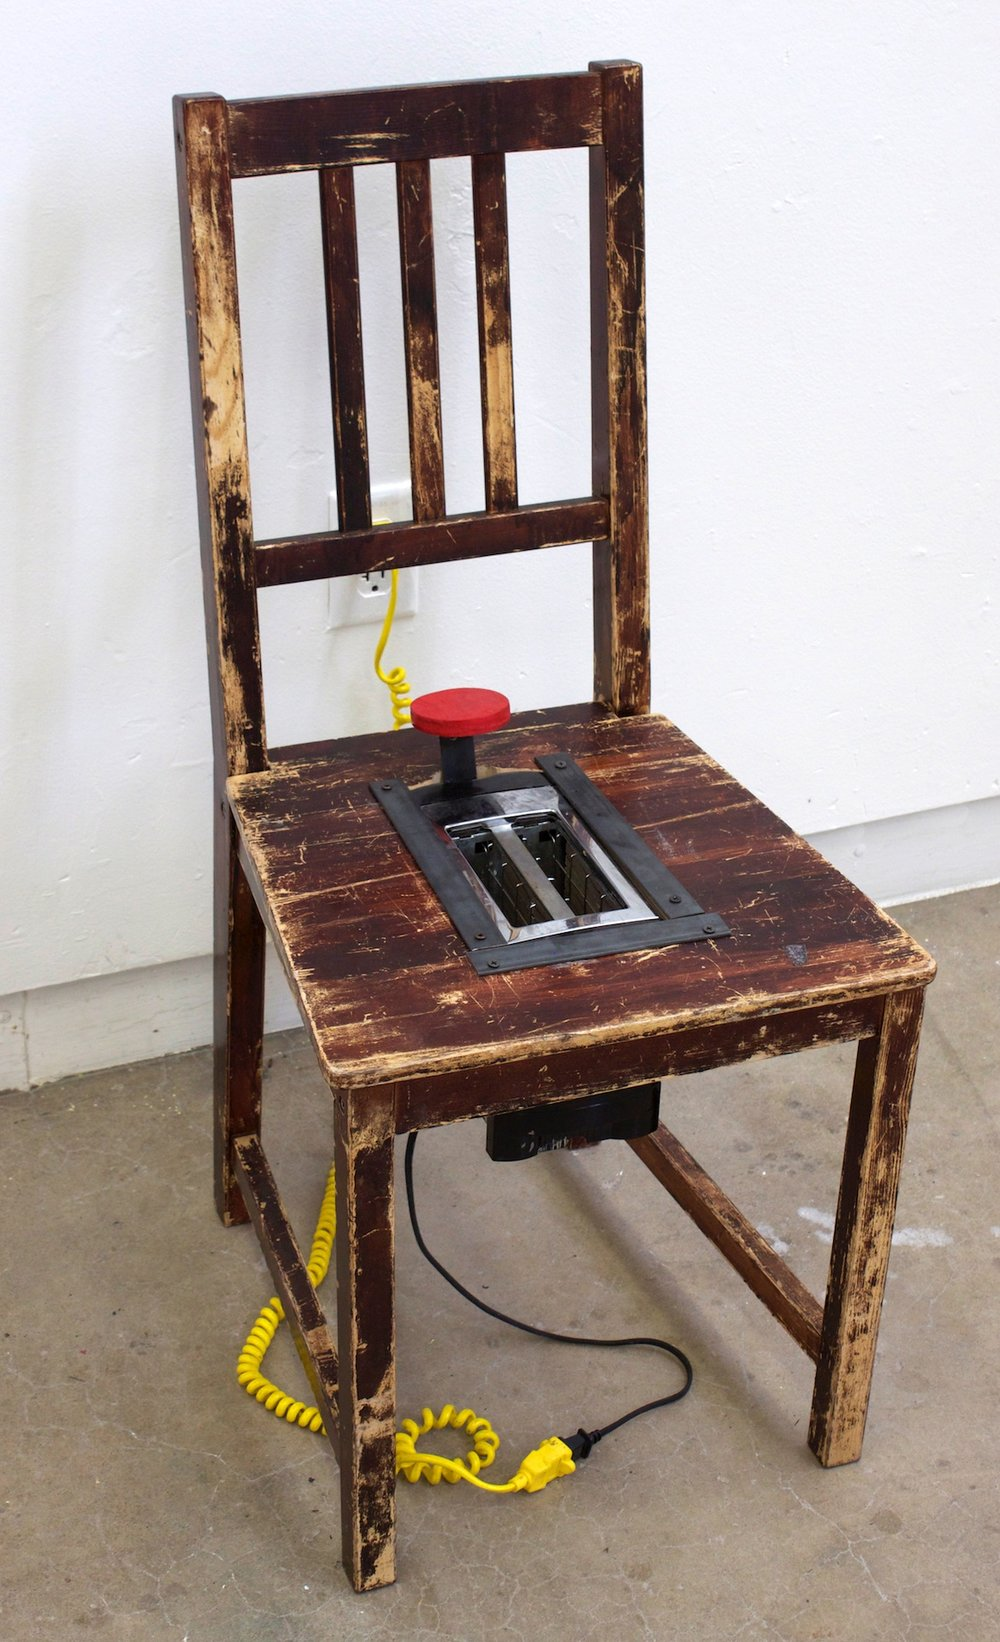 Made at University of Oregon in Wood and Everyday Materials, found chair with toaster embedded in seat, 36x18x18 inches, 2014.